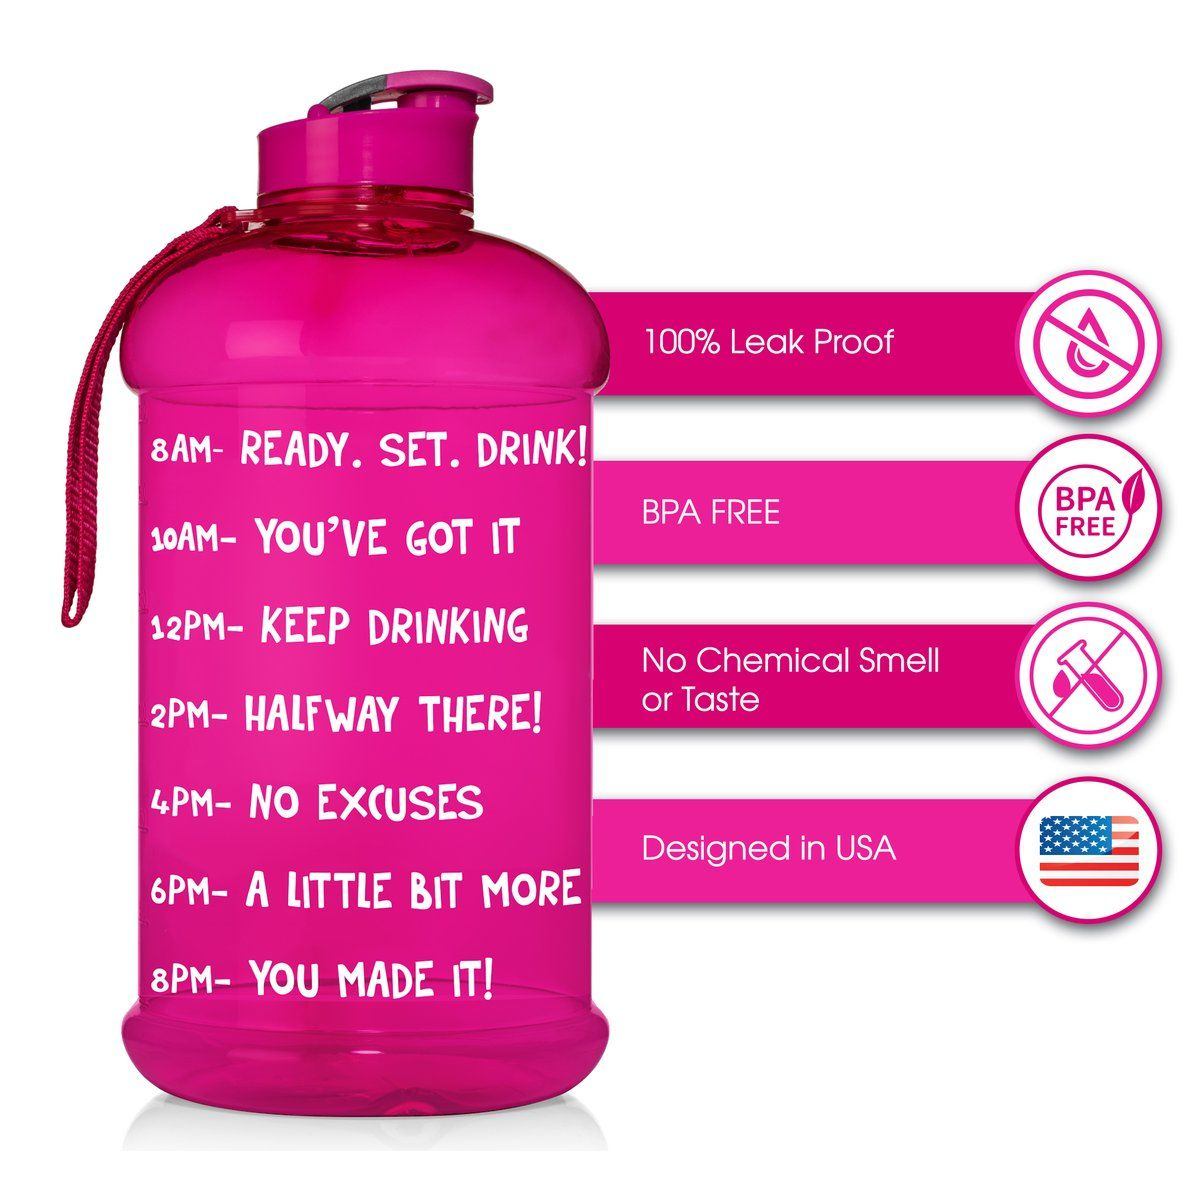 Pin By Sharlett On Ceo Bpa Free Water Bottles Selling 25 Motivational Water Bottle Water Bottle With Times Bottle